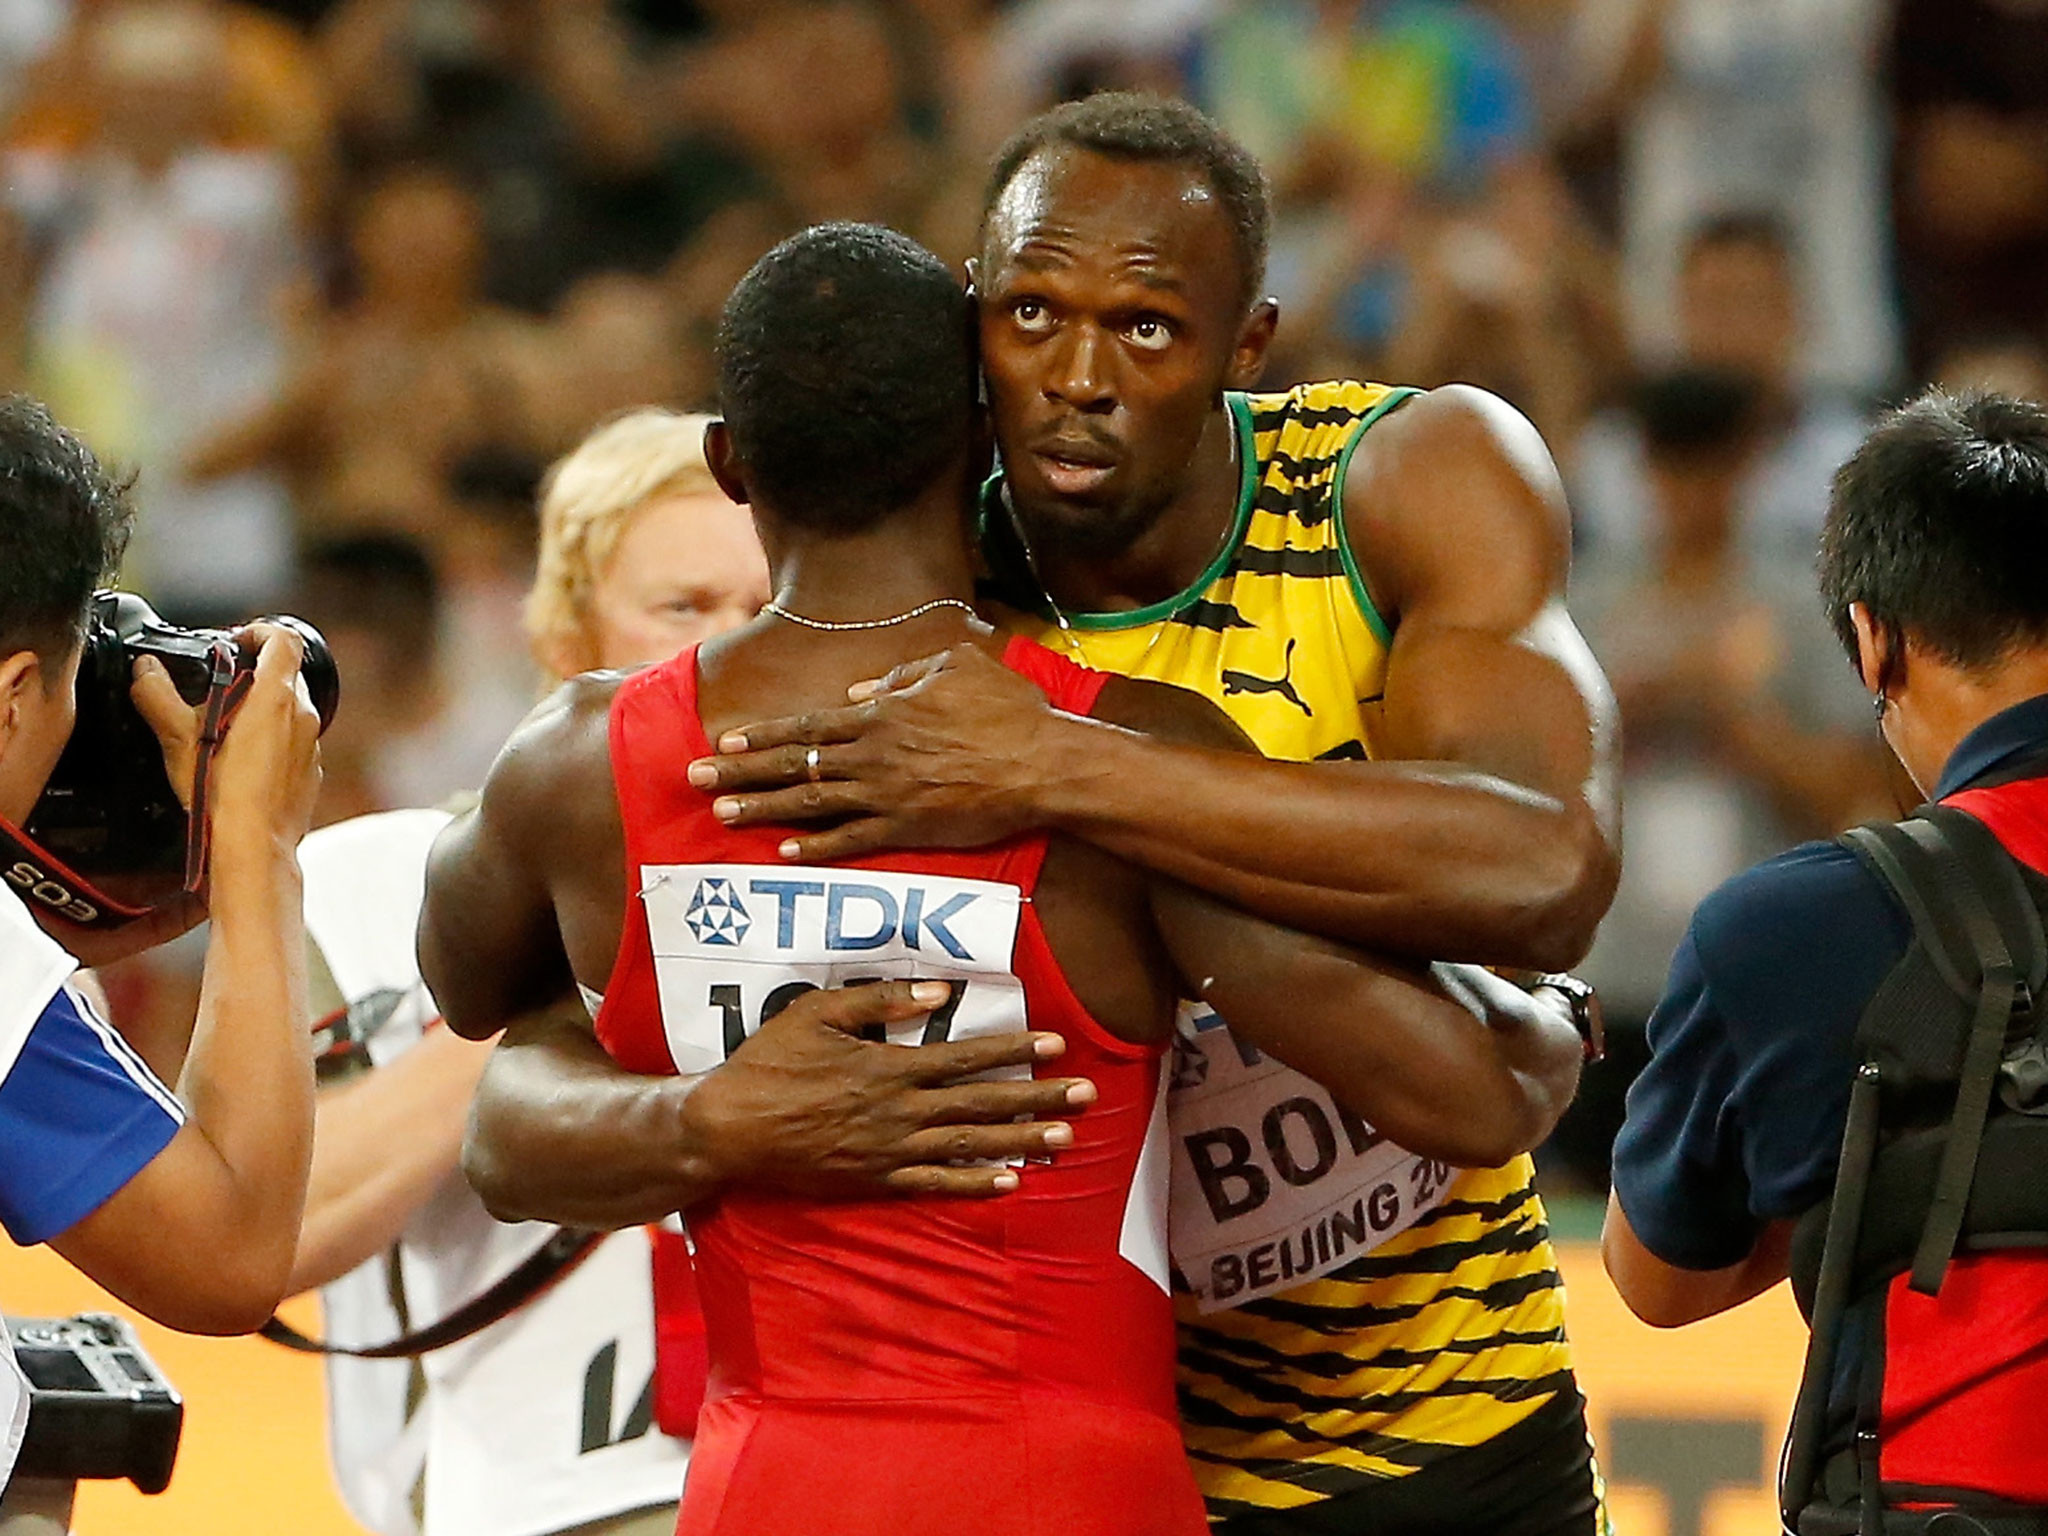 2048x1536 Rio 2016 200m Usain Bolt Wins Gold To Remain On Course For Olympic Triple